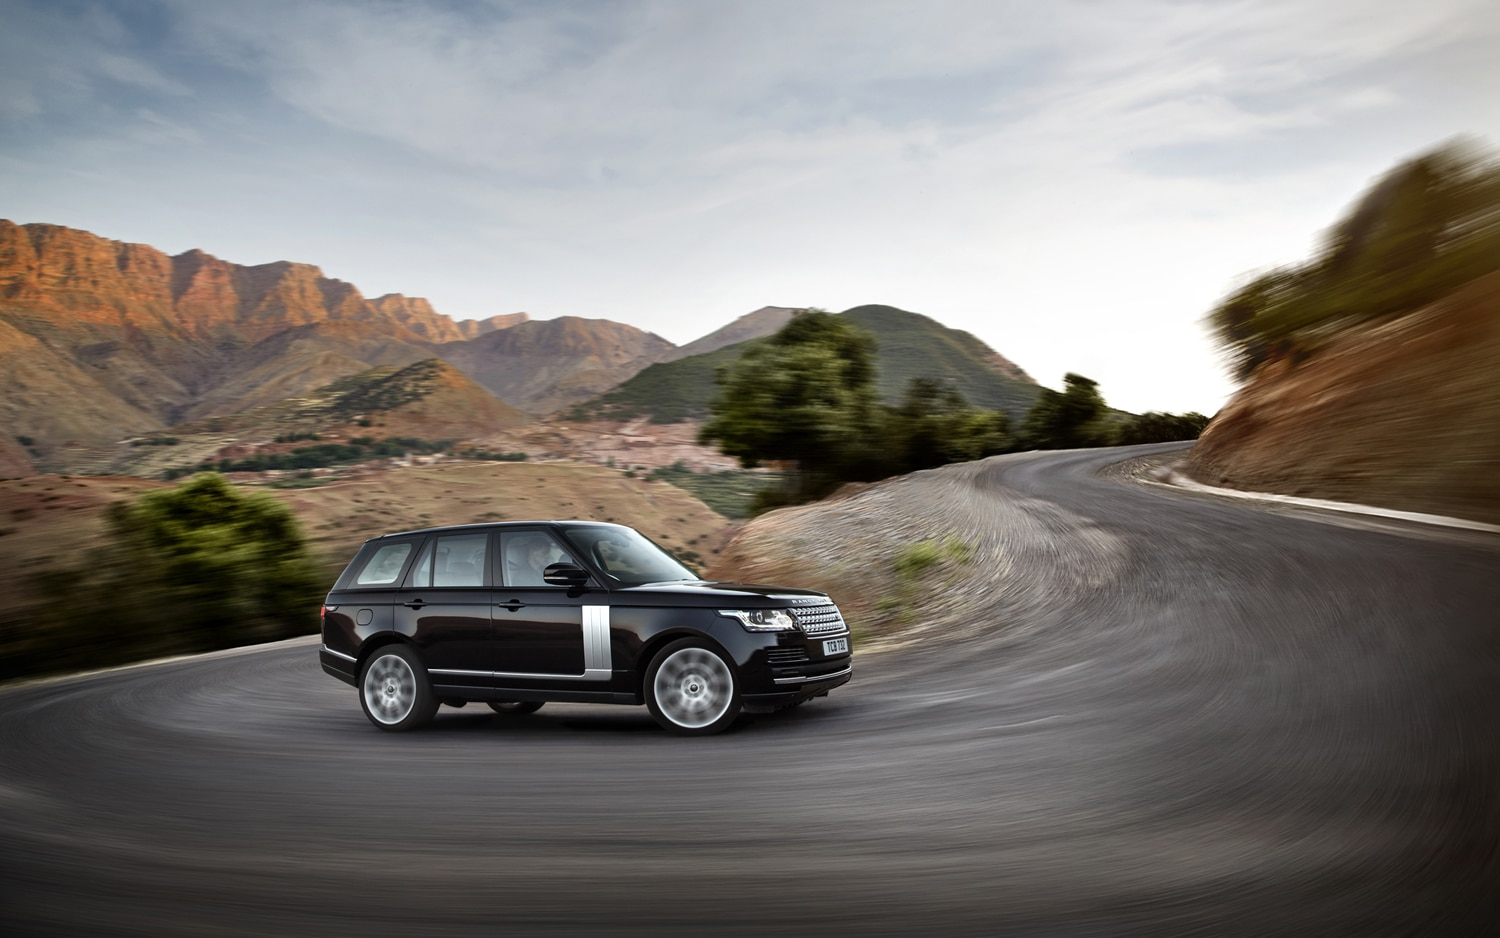 2013 Land Rover Range Rover Front Three Quarter Turn 2